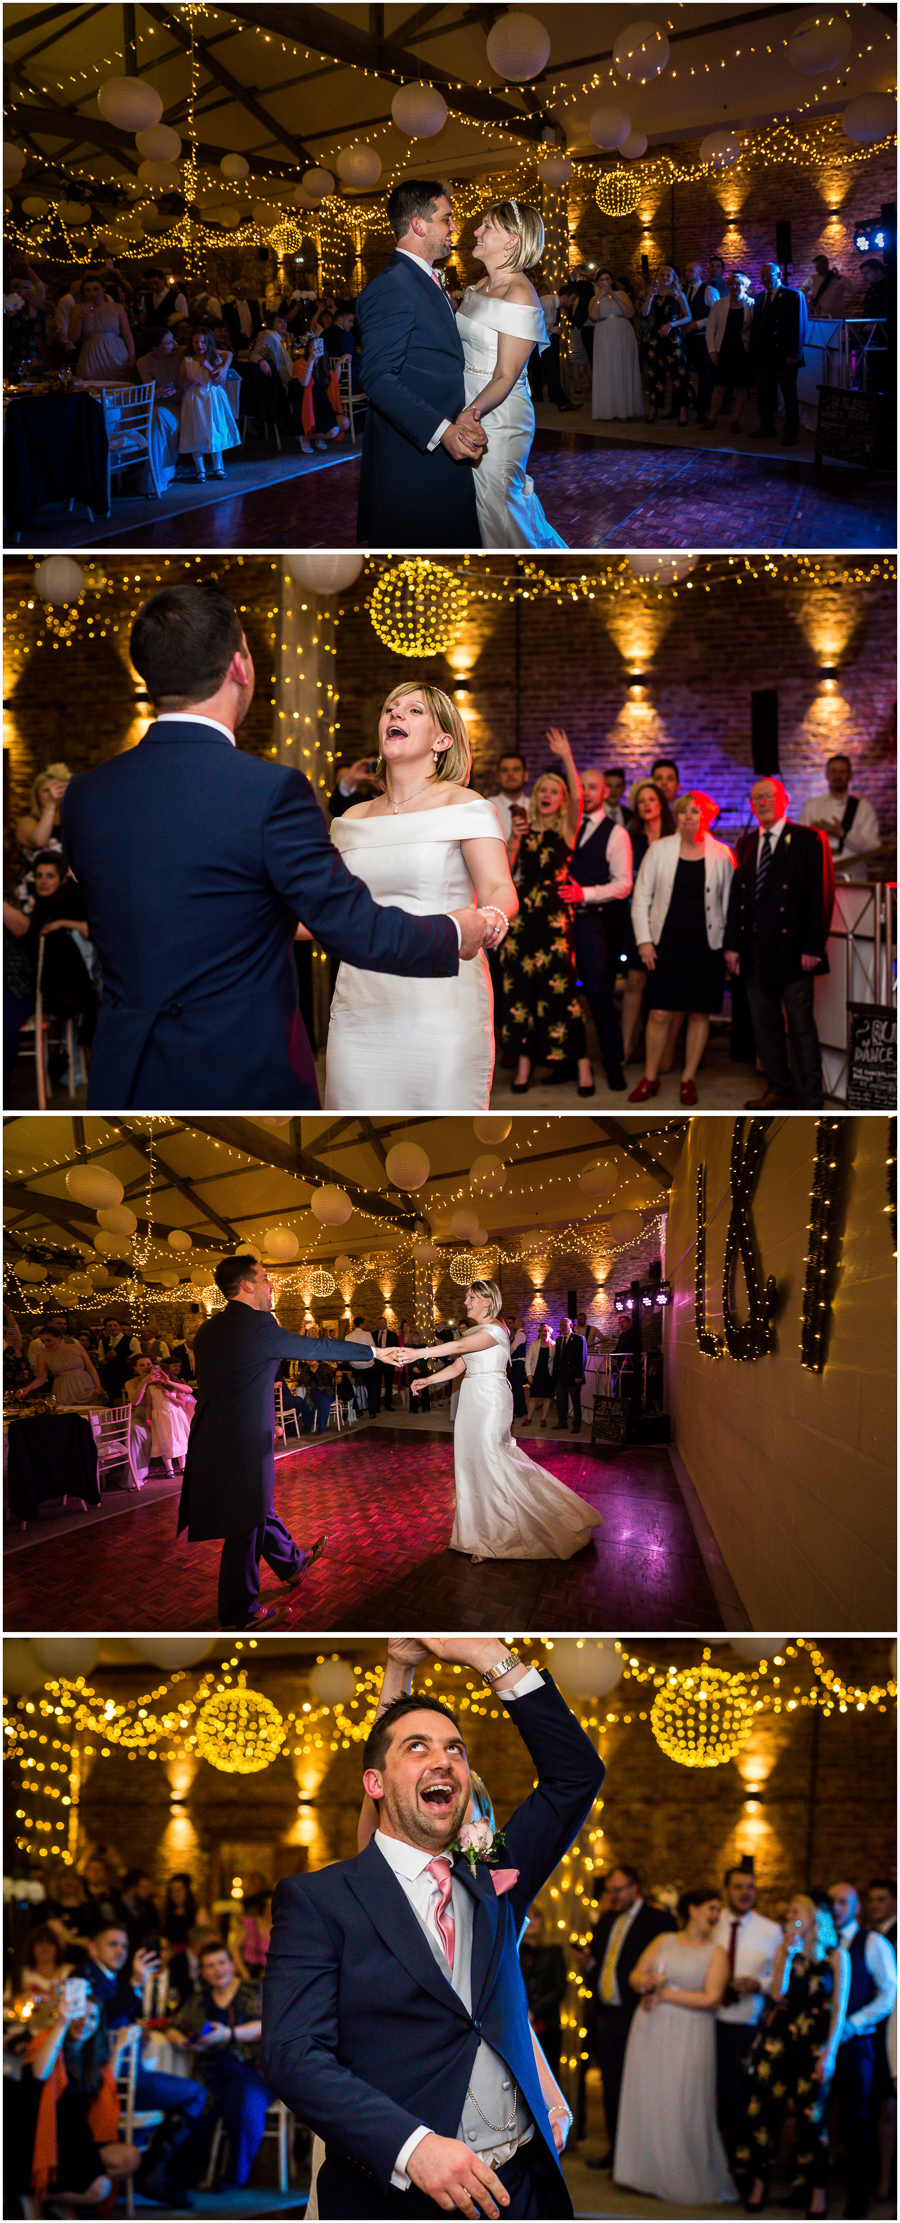 Barmybyfields barns wedding photography - first dance